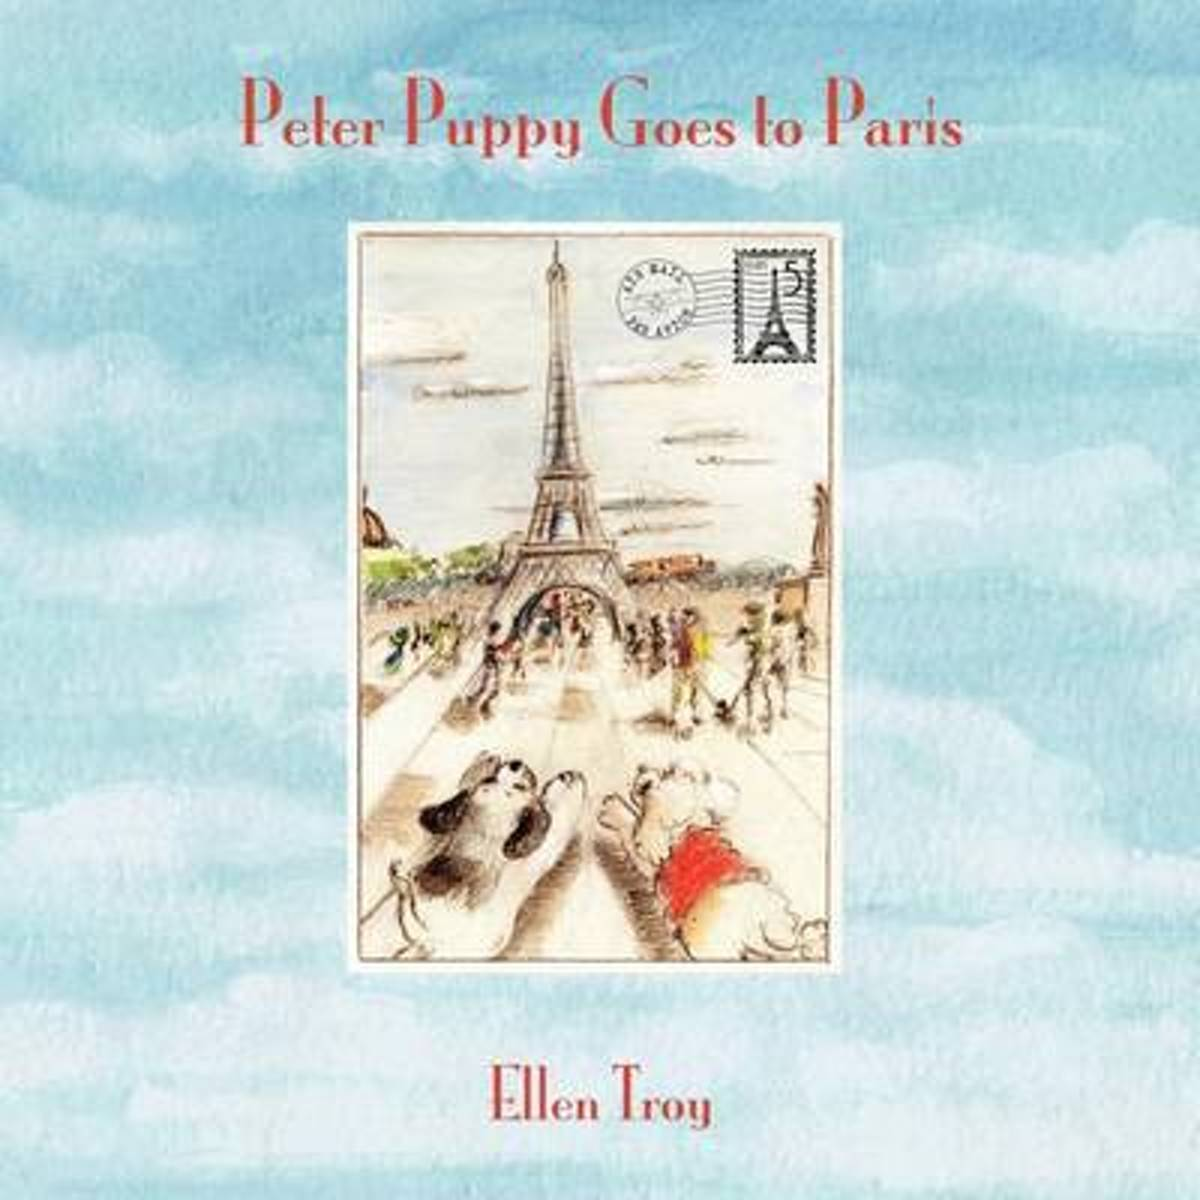 Peter Puppy Goes to Paris